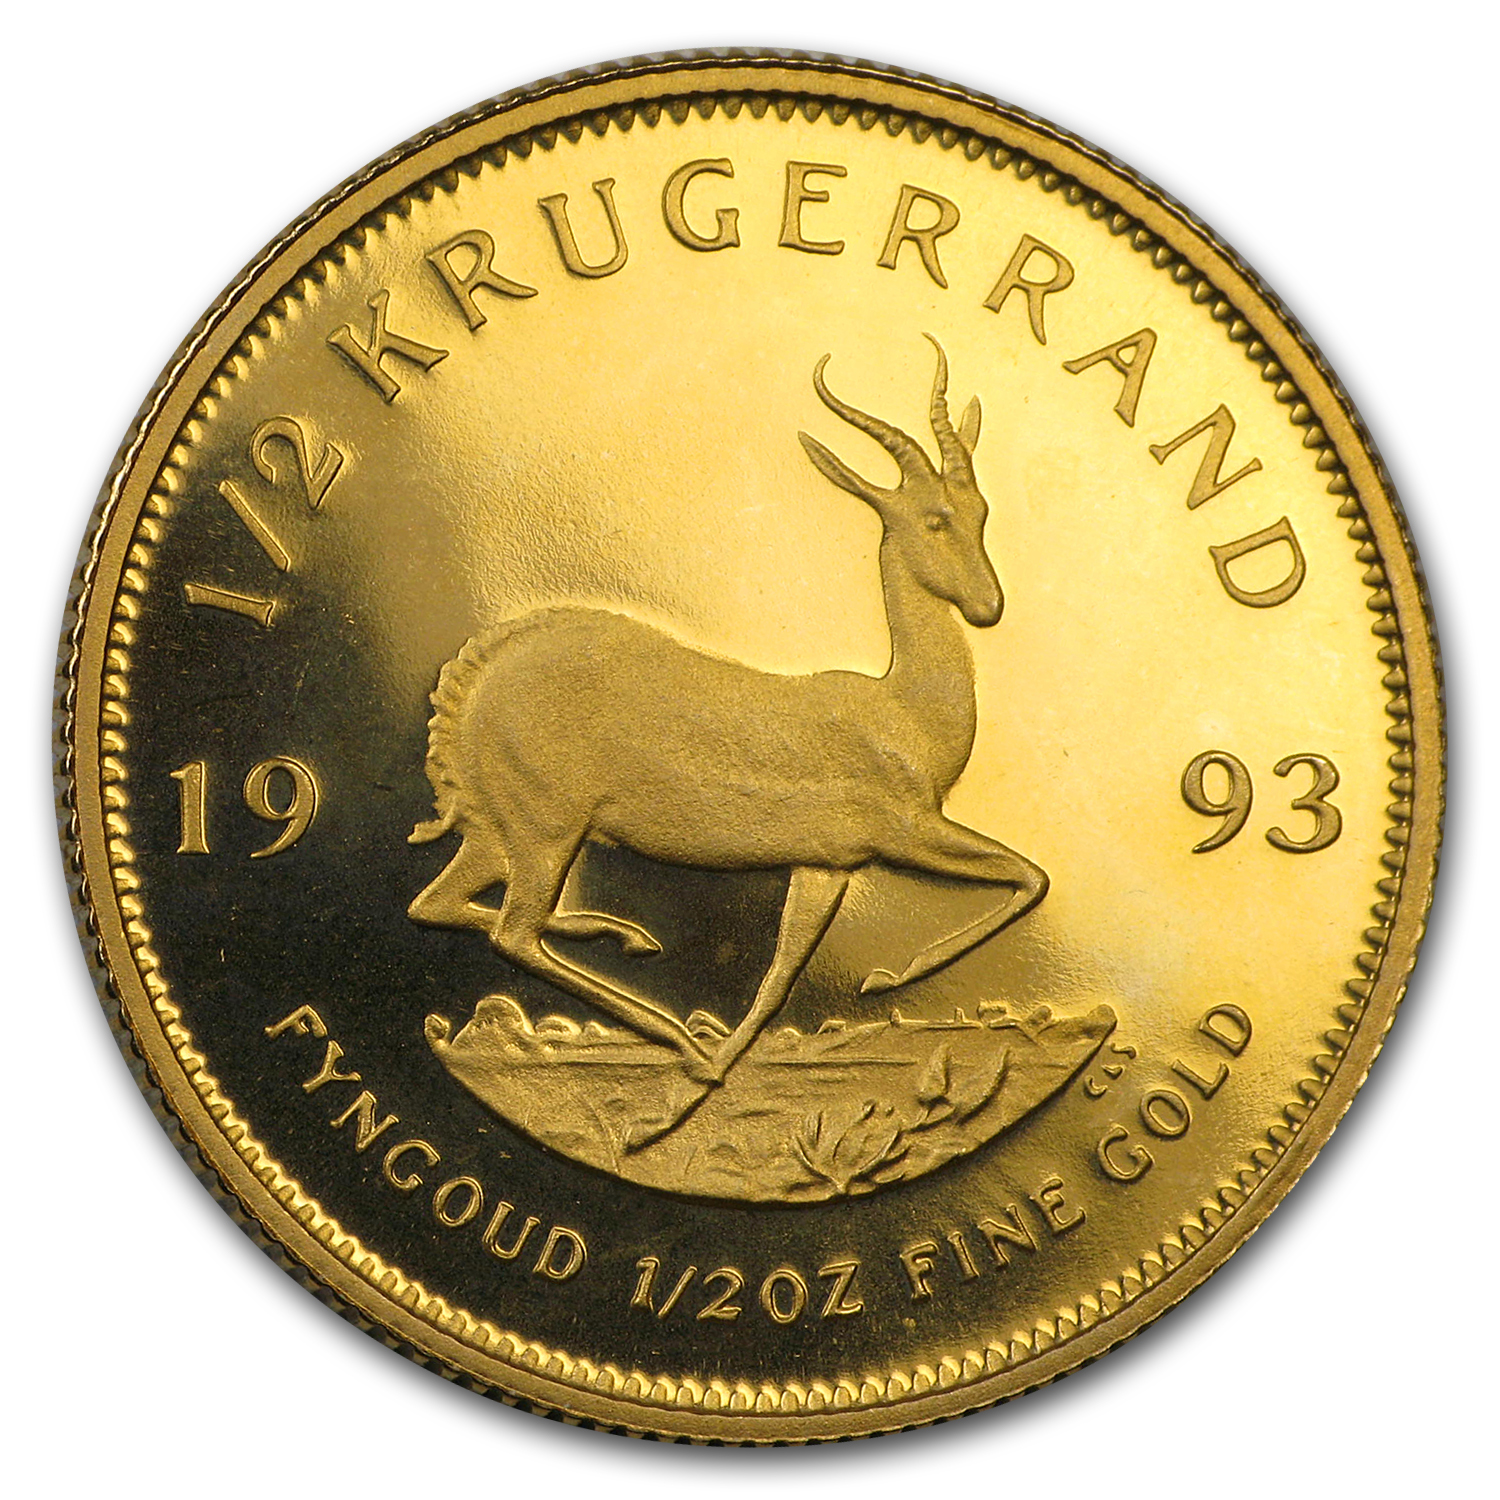 1993 South Africa 1/2 oz Proof Gold Krugerrand